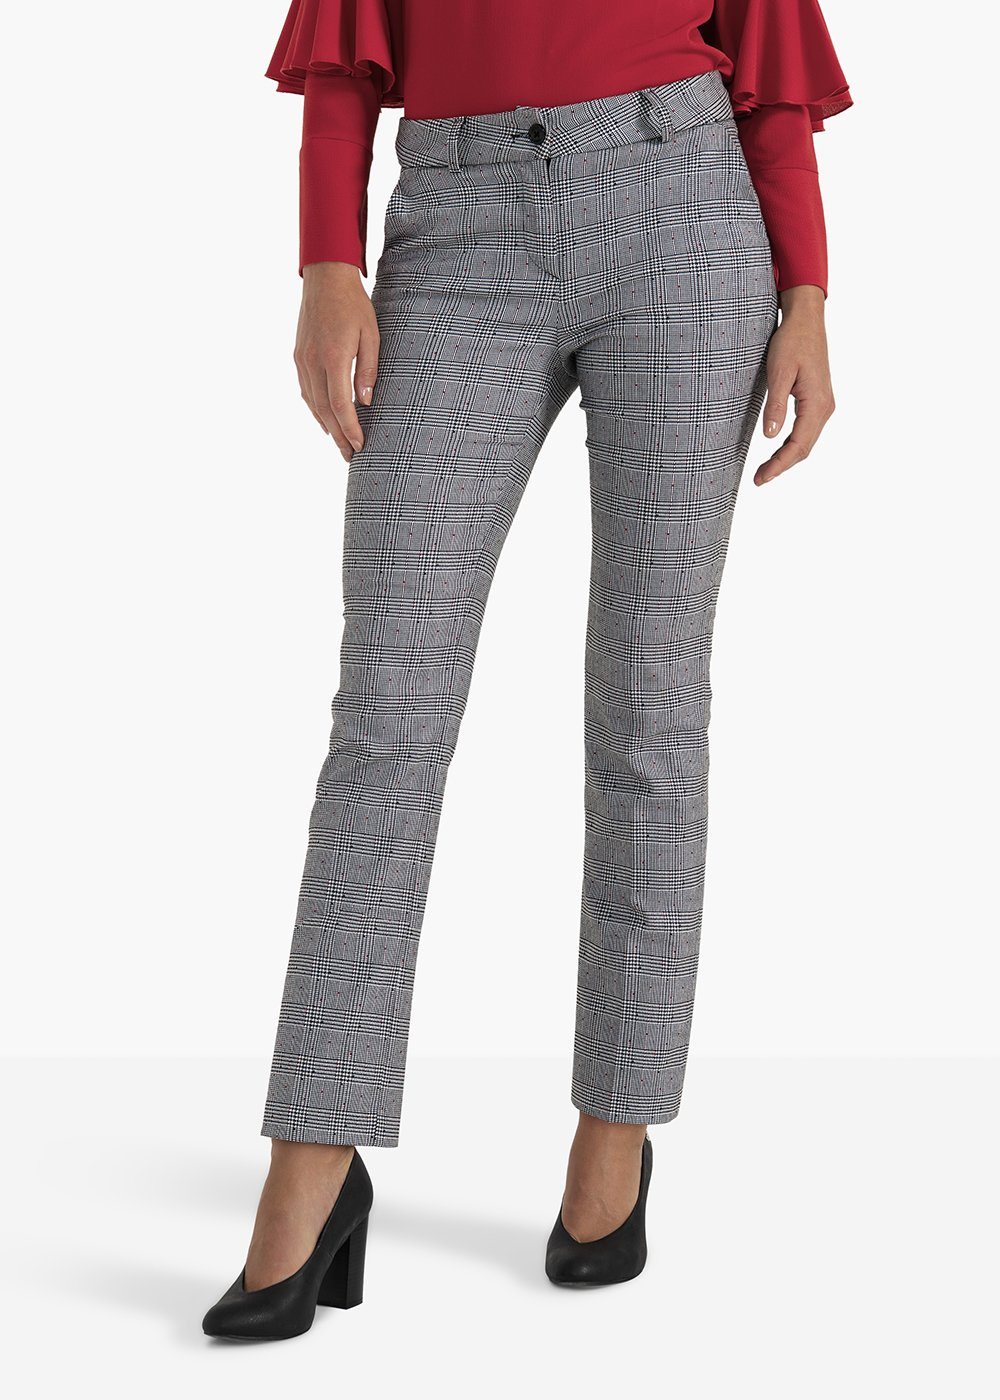 Paddy trousers in check fabric with micro dots - White / Black Fantasia - Woman